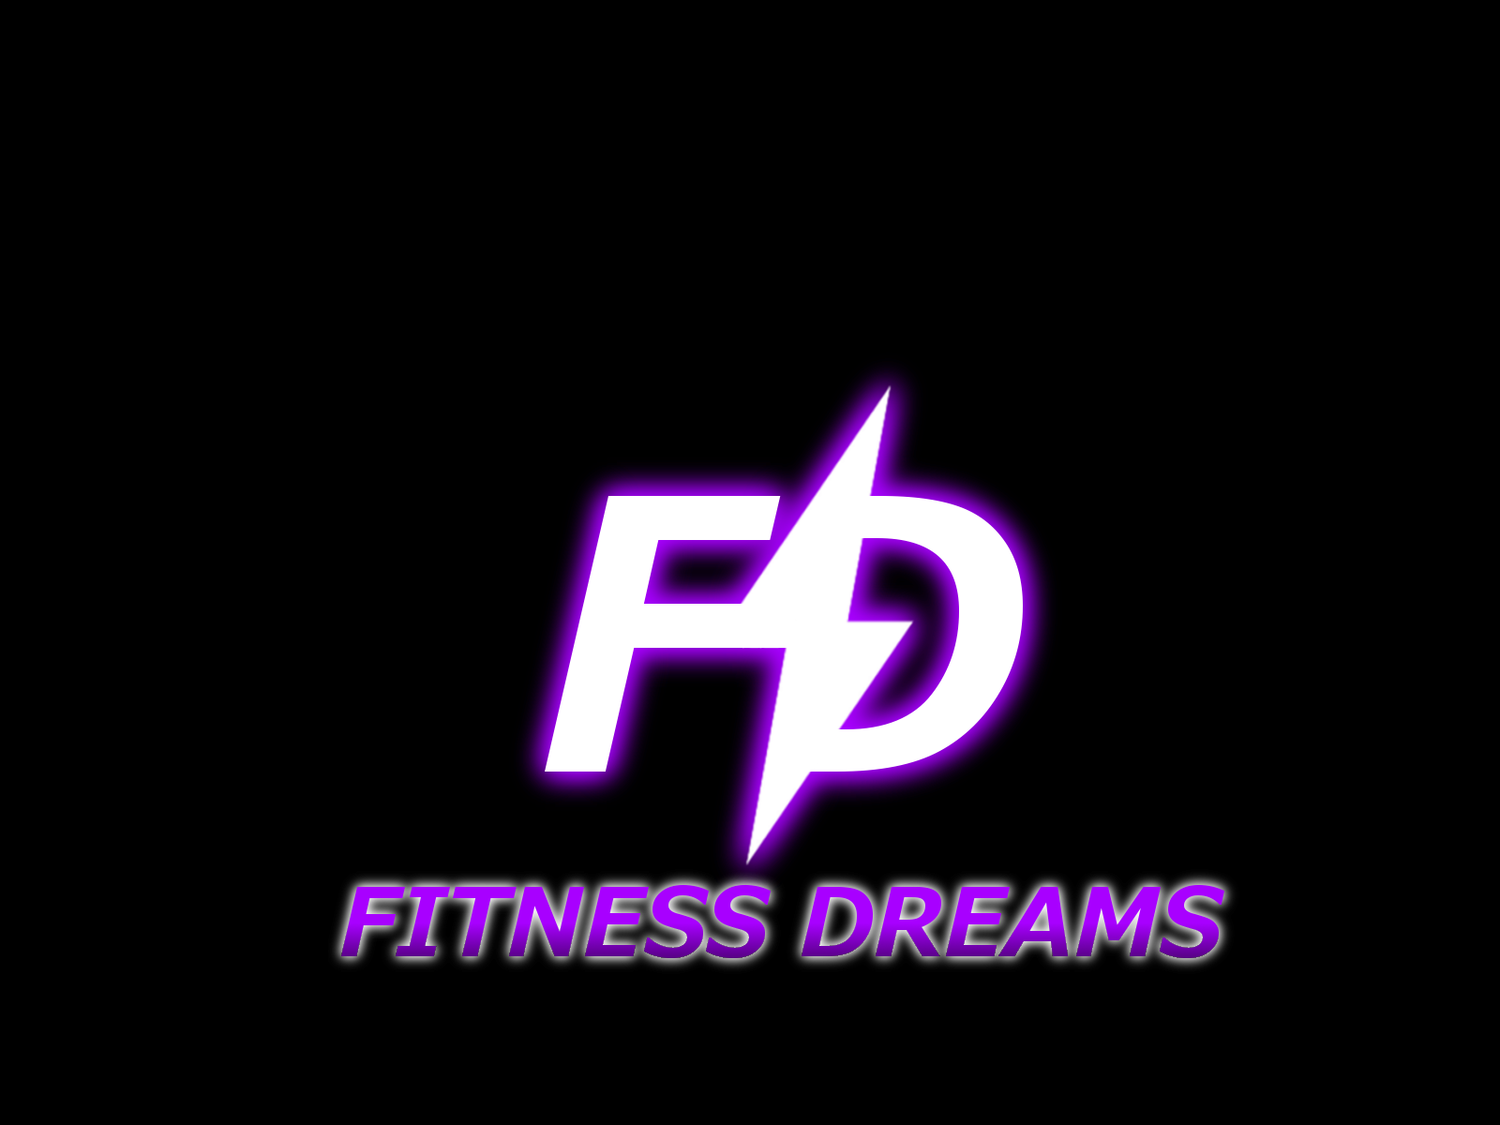 Fitness Dreams